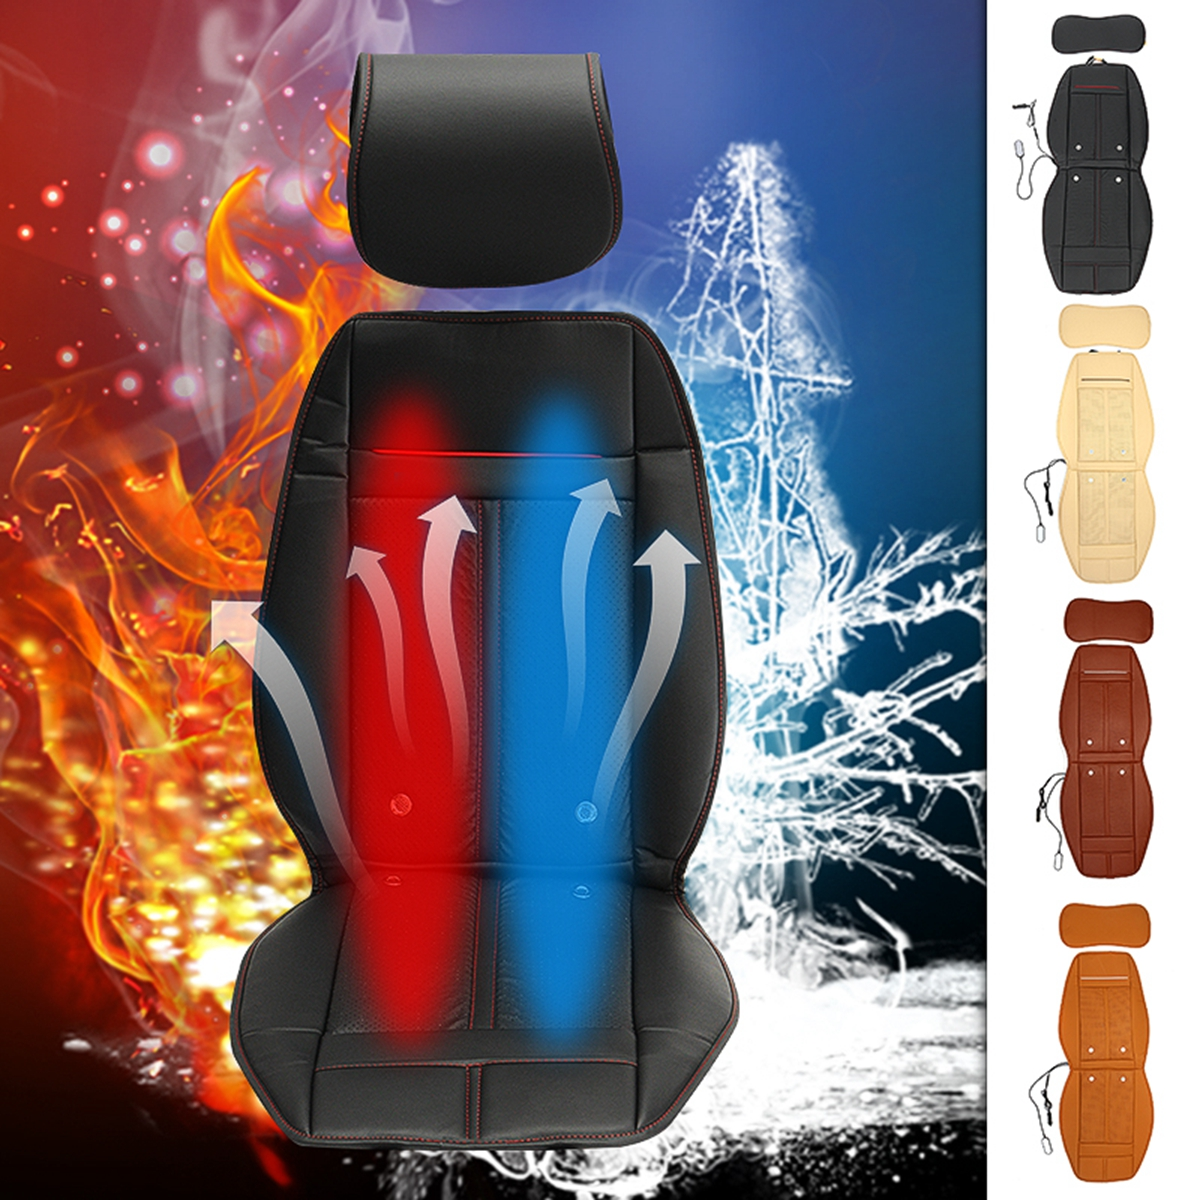 Auto Winter / Summer Seat Cover 12V Universal 3 In 1 Leather Car Cooling Warm Heated Massage Chair Seat Cushion